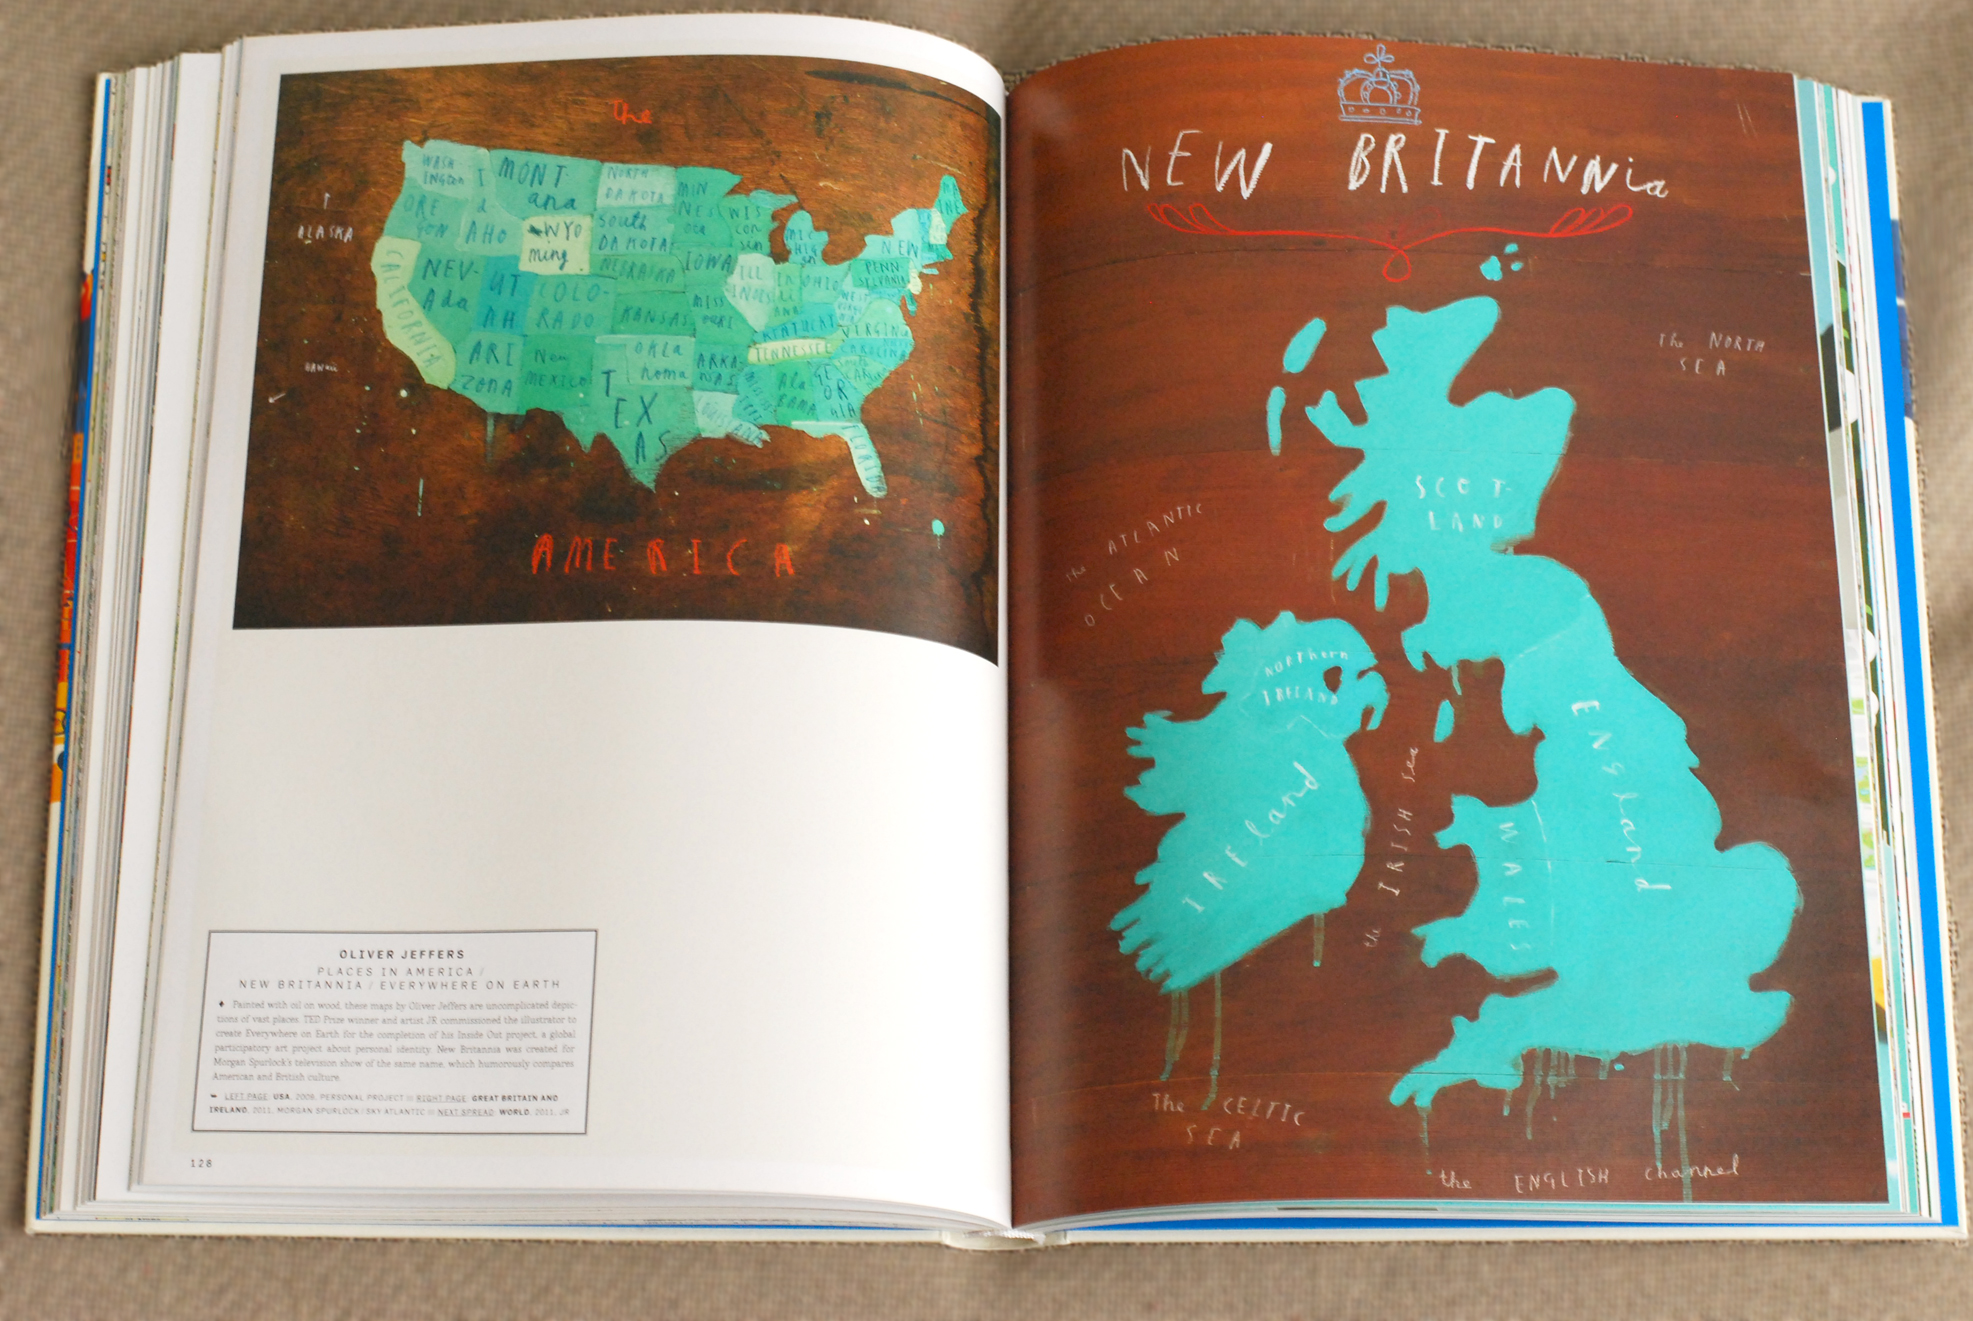 Oliver Jeffers @ A Map of the World